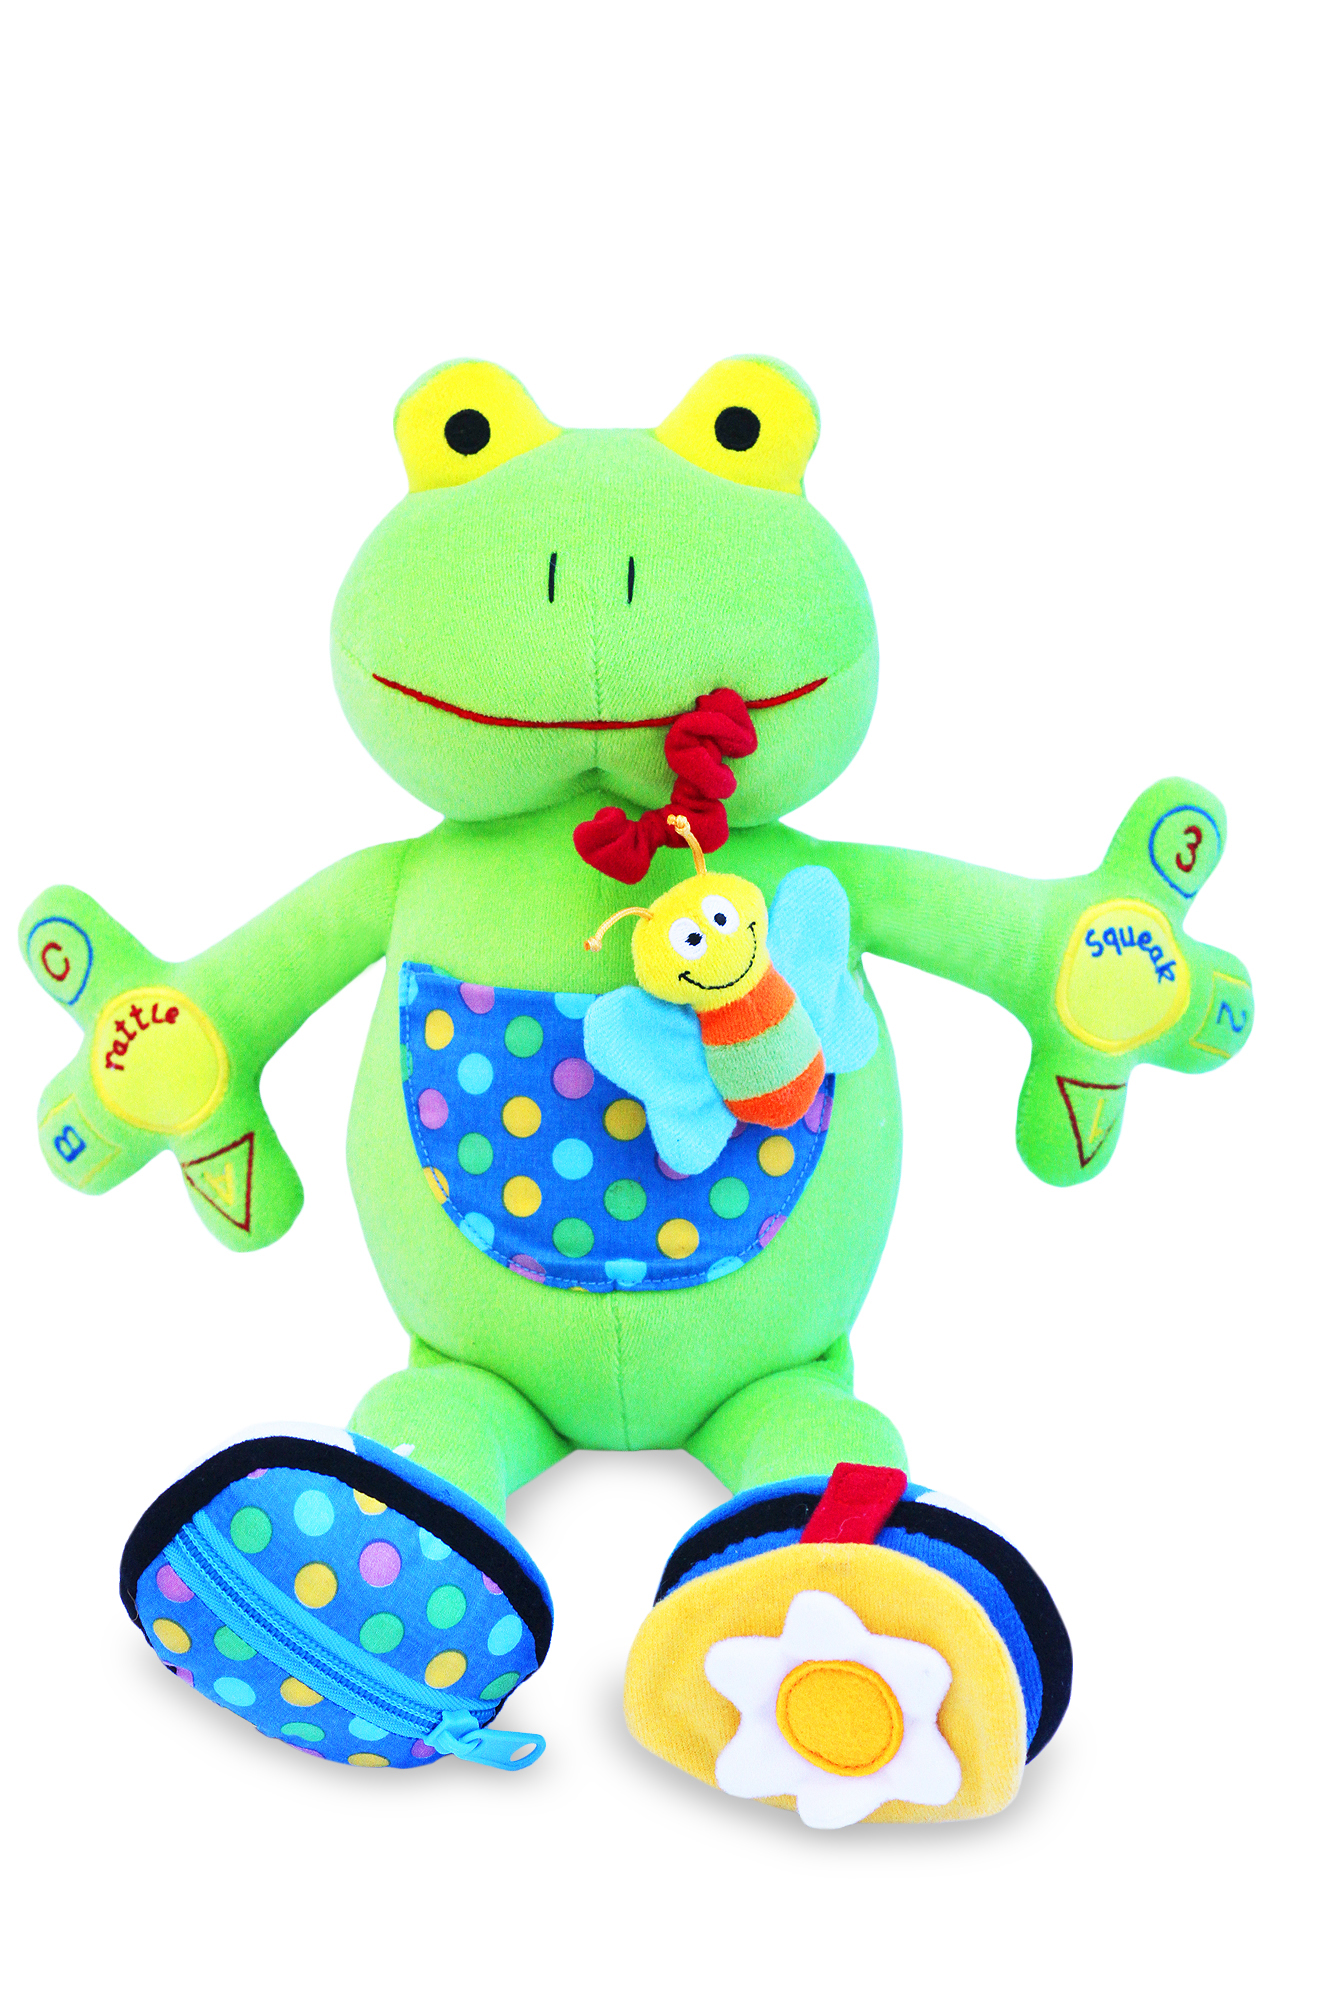 Baby Activity Toys : My pal jumper the frog activity toy best educational